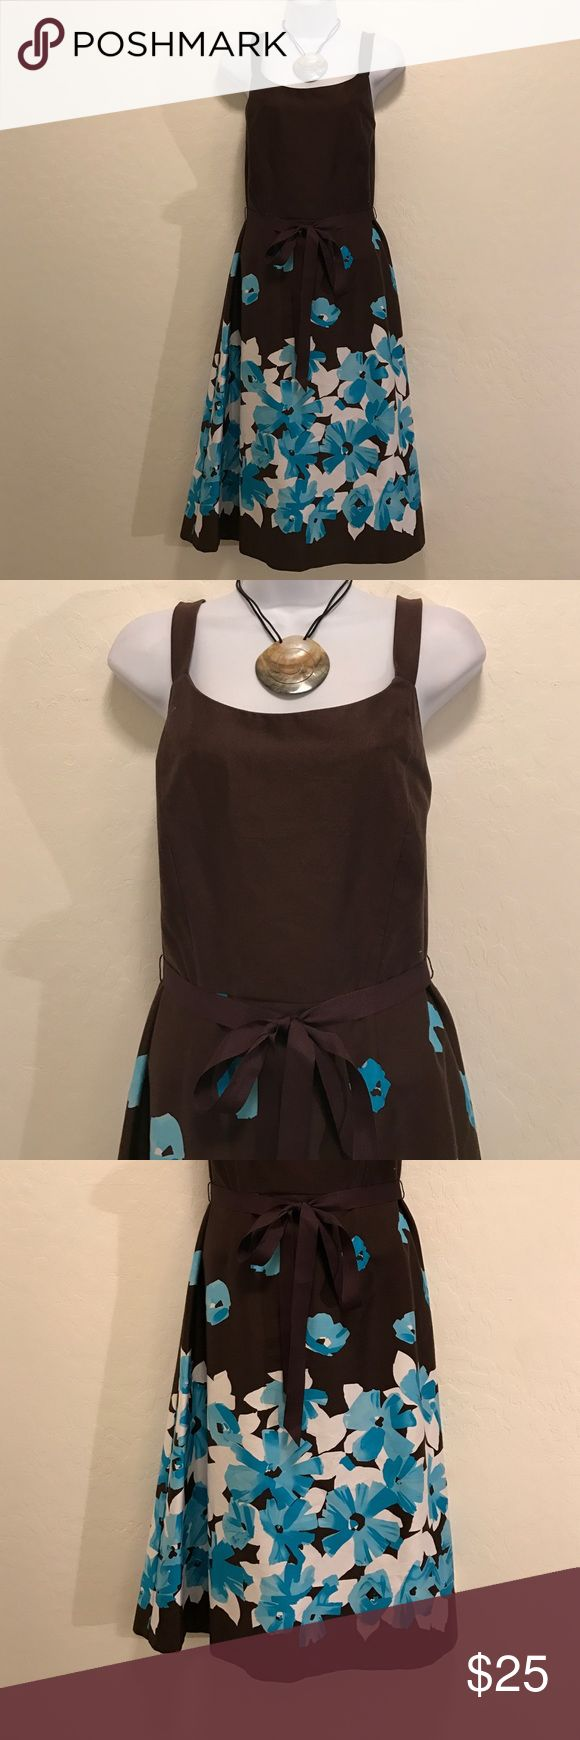 Studio I Brown Blue Floral Sleeveless Dress Excellent Condition, Cool Colors & Print, Accessories not included. Back Zipper, Tie Brown Belt. Dresses